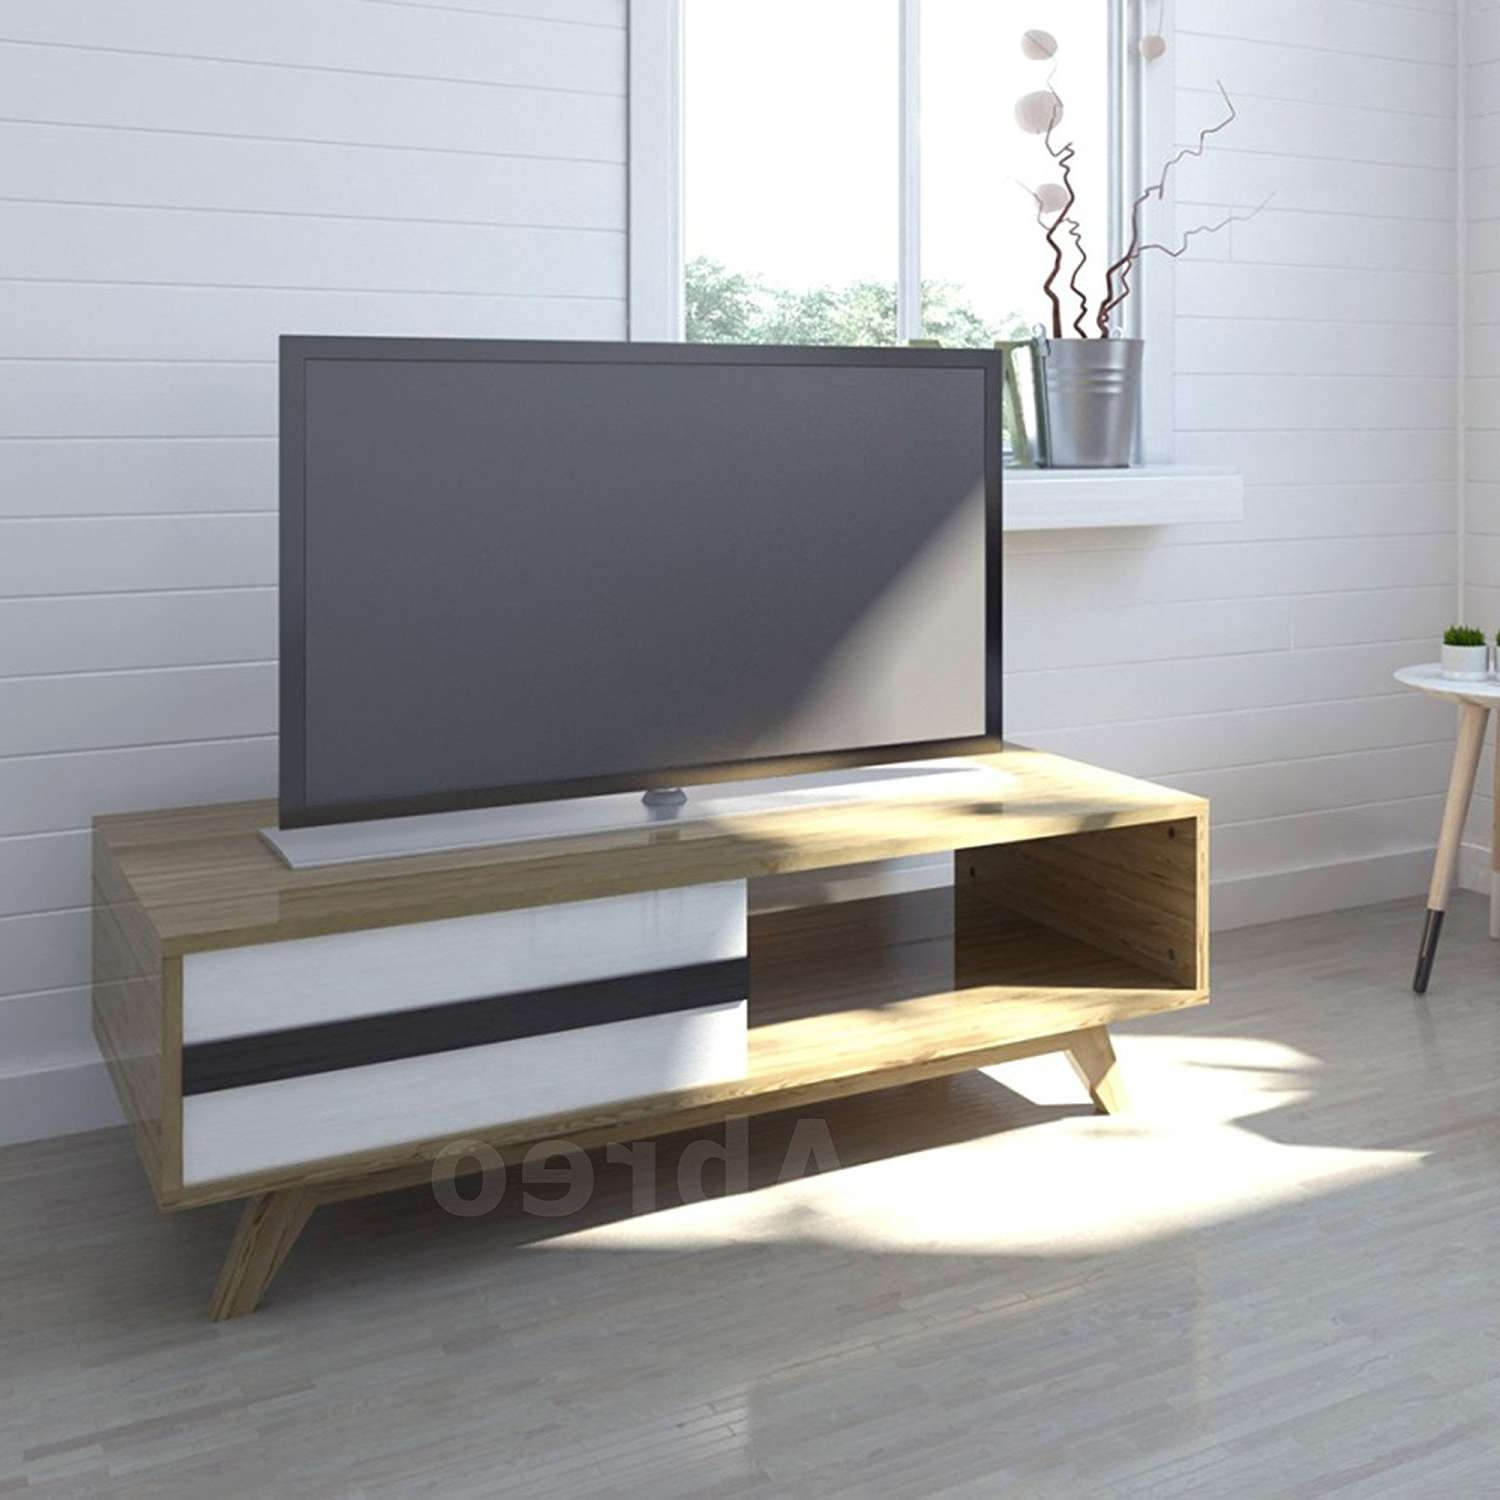 Coffee Table : Awesome Coffee Table Sets Clearance White Living Regarding Latest Coffee Table And Tv Unit Sets (View 4 of 20)